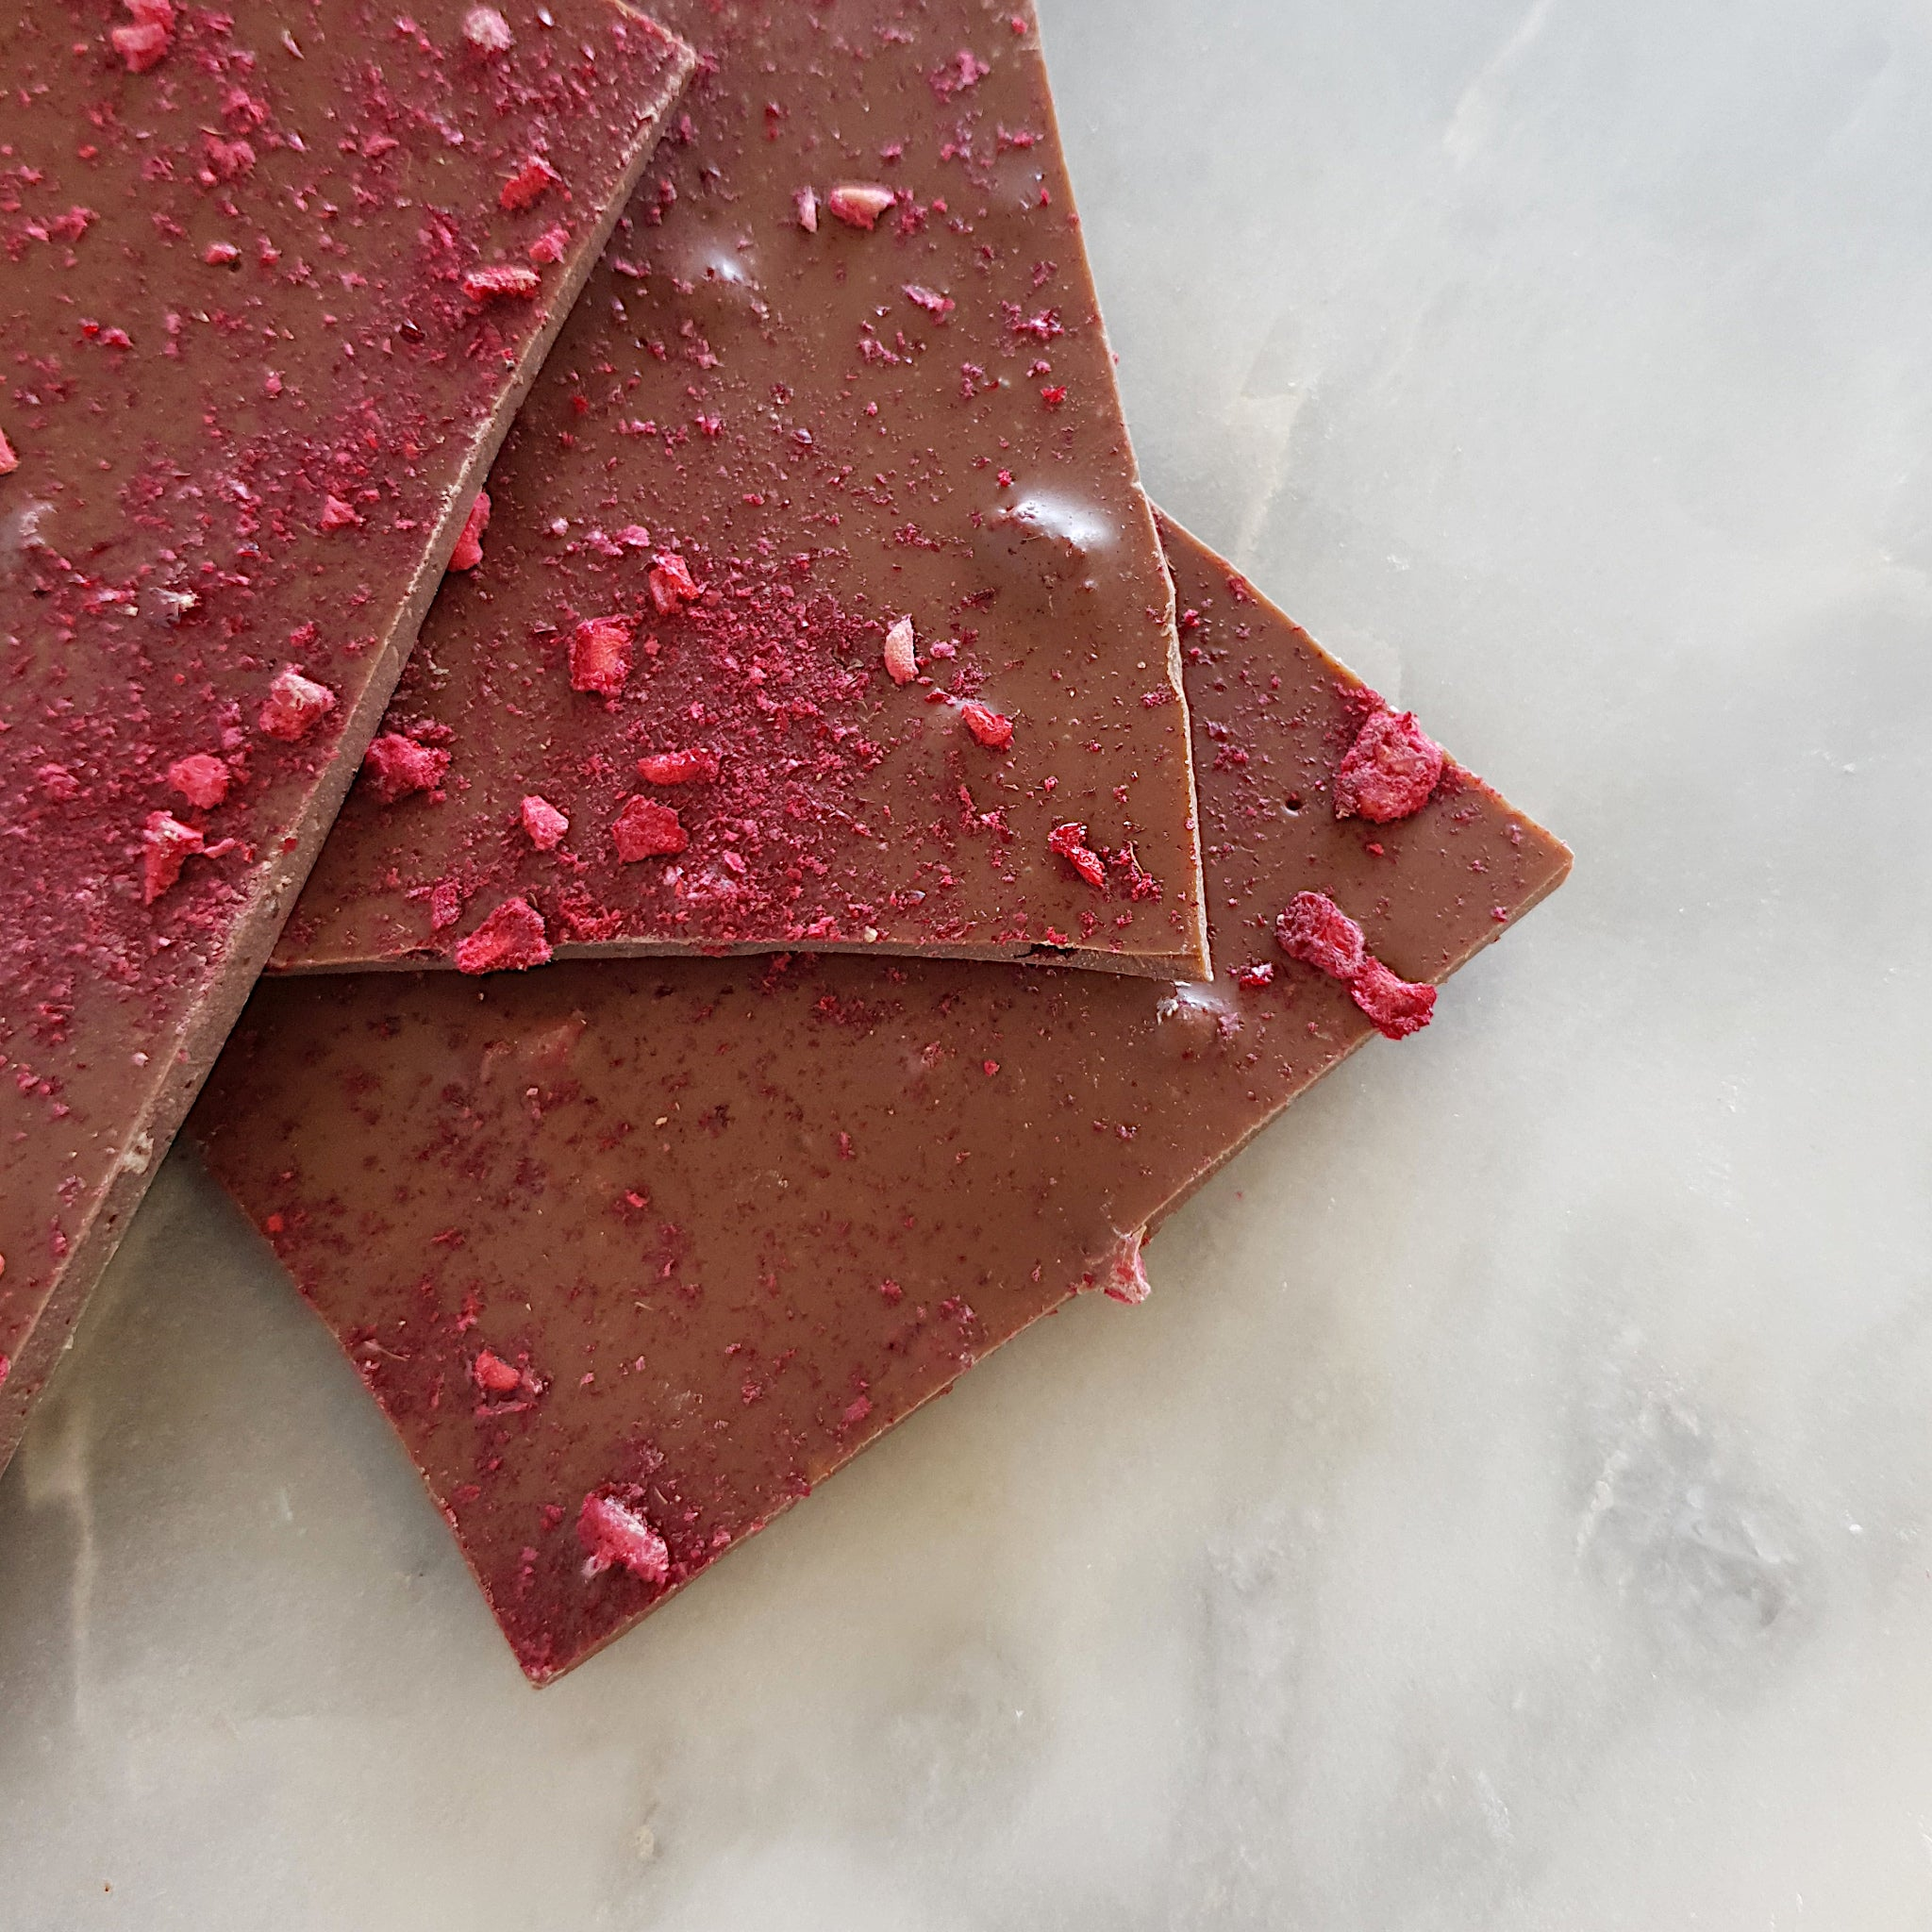 Milk chocolate raspberry bark made using Callebaut Belgian couverture chocolate. Handmade in Milton NSW by local chocolate shop Woodstock Chocolate Co.